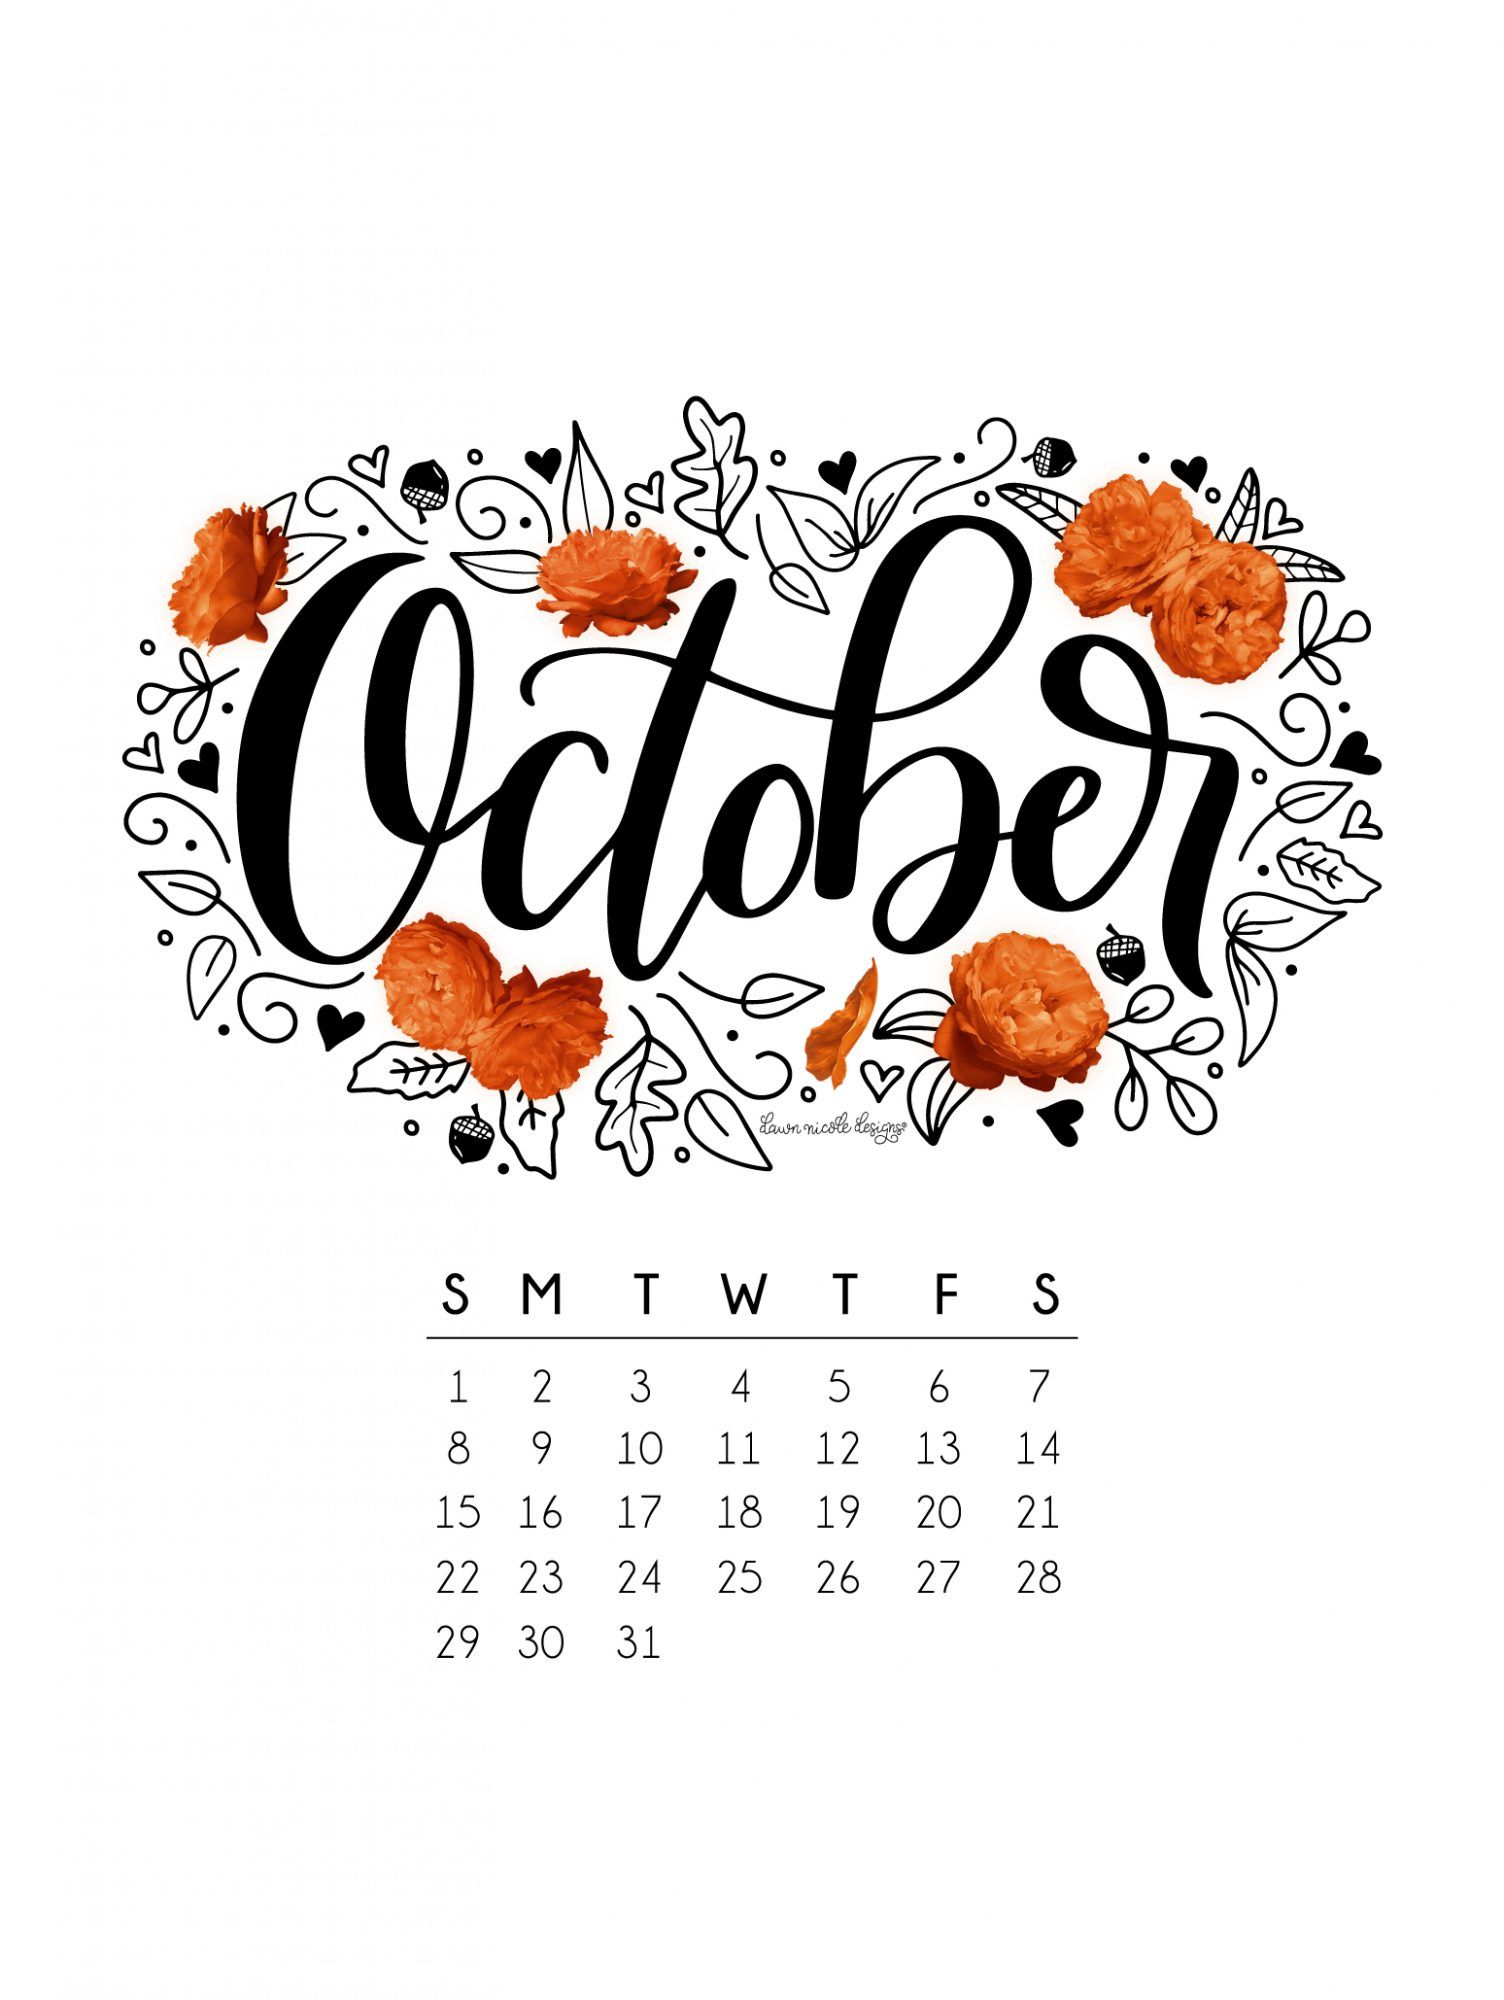 October2017CalendarSundayStartipad.jpg 1,504×2,000